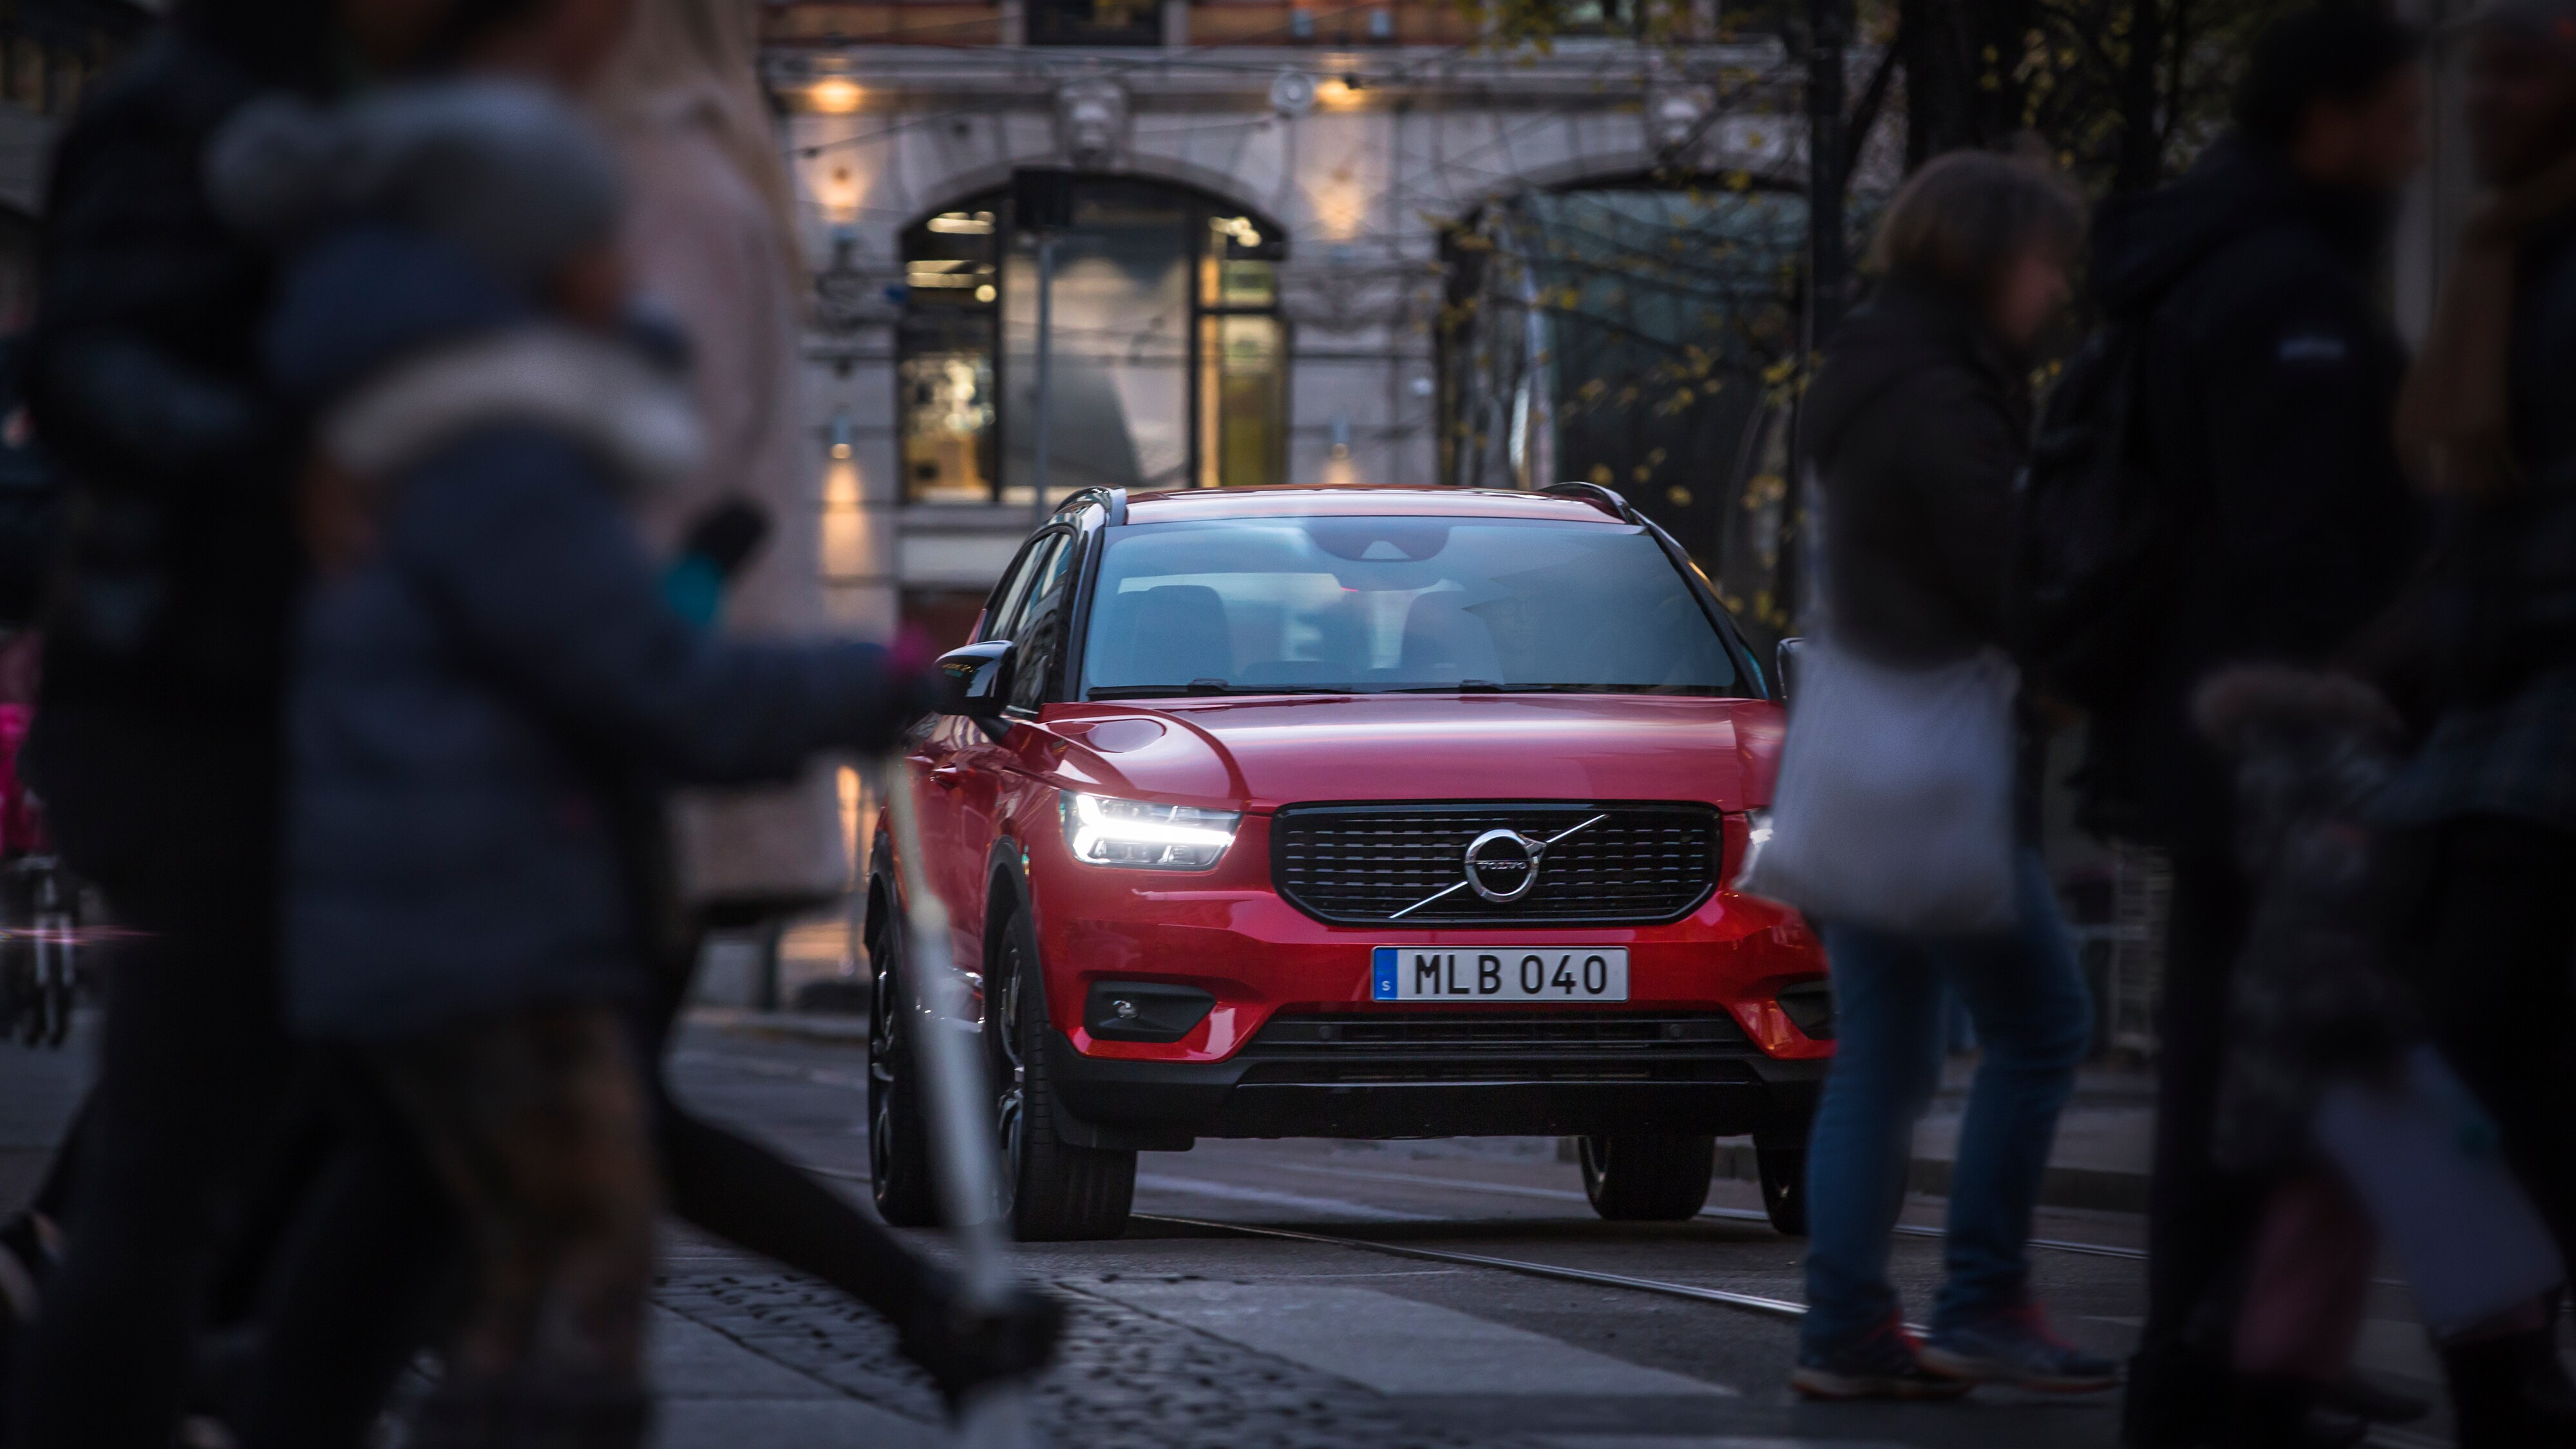 A Volvo XC40 stopped in the street in Oslo as pedestrians cross the road in foreground